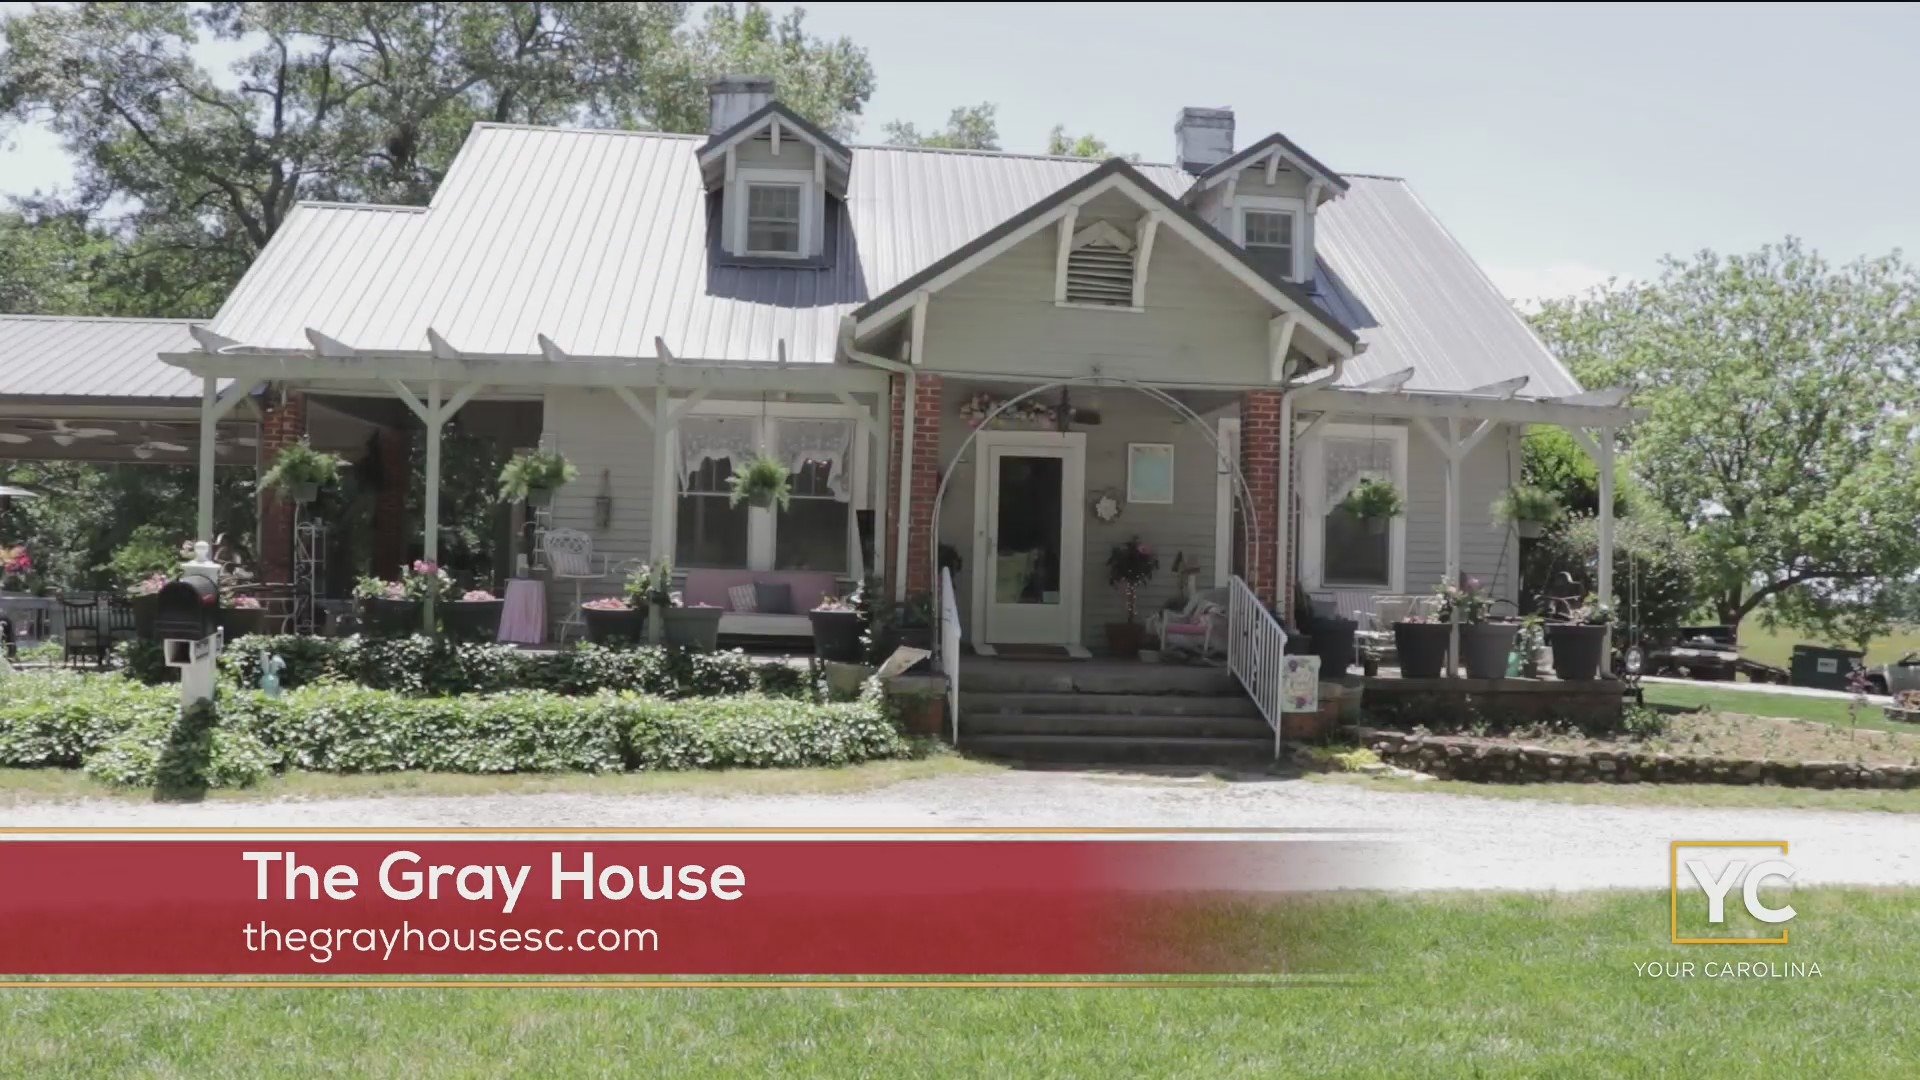 The Gray House in Starr offers destination dining, lodging and event space